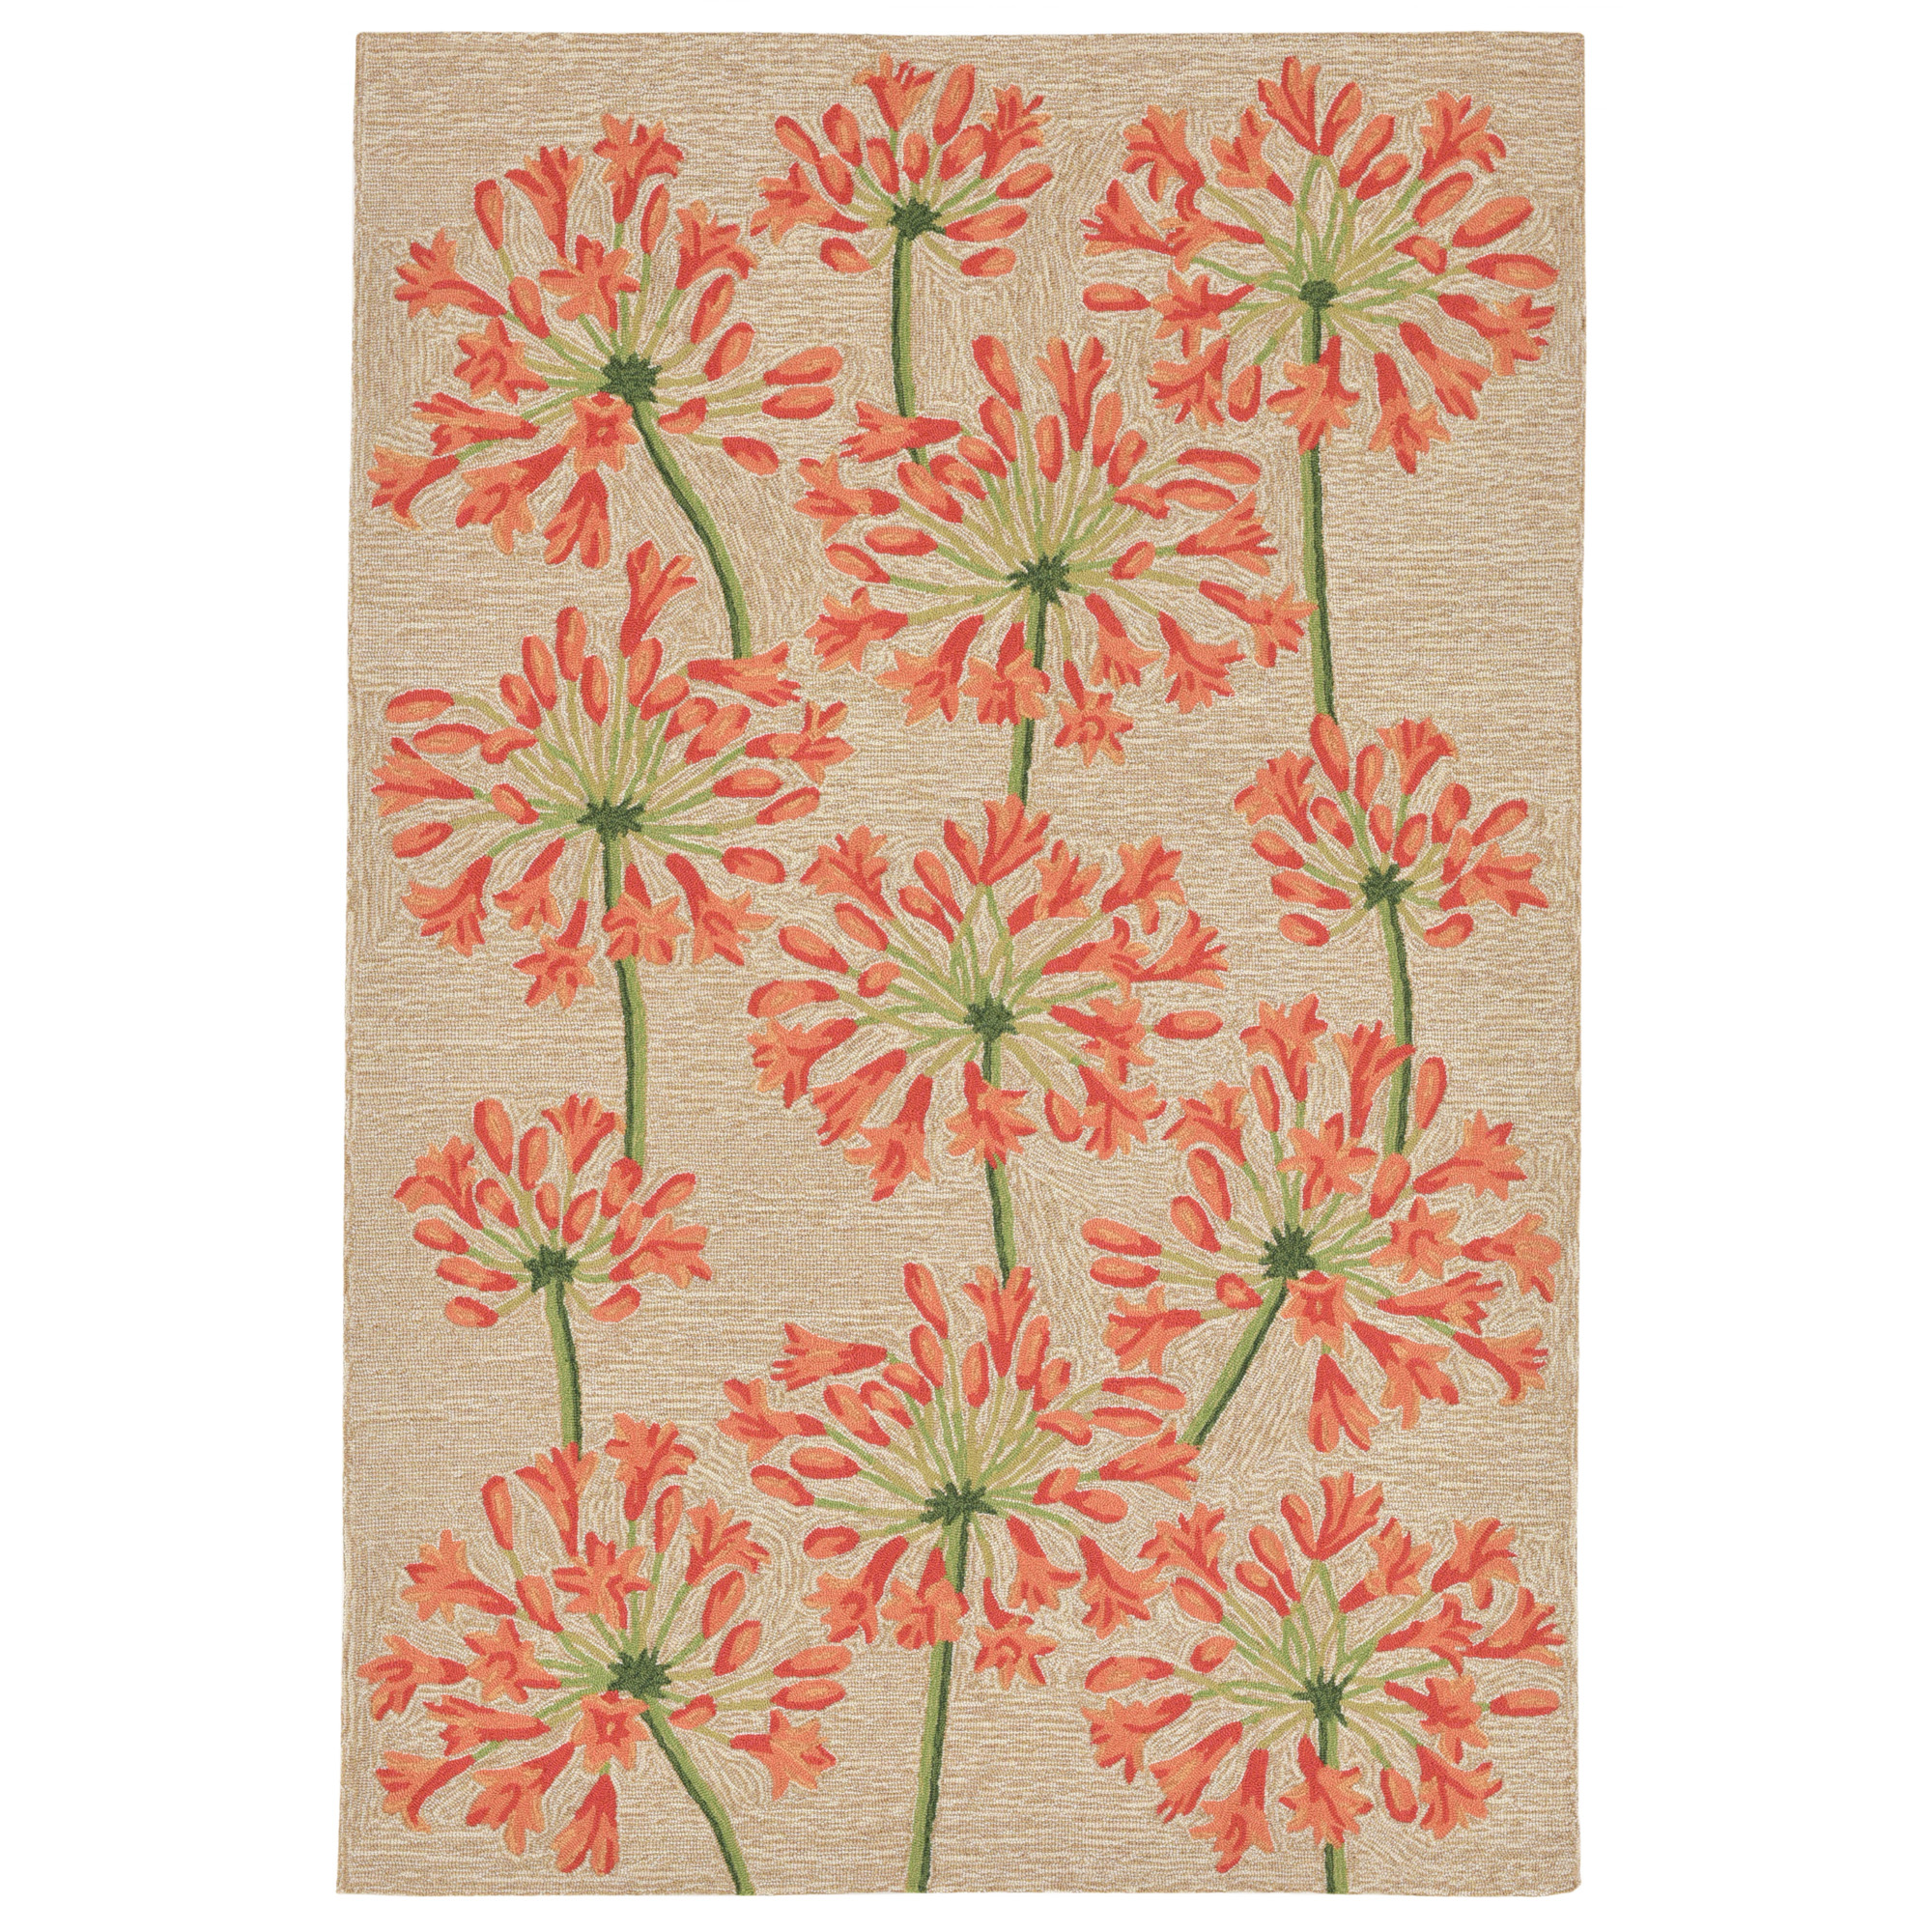 "RAVELLA 2273/12 DESERT LILY NEUTRAL - 7'6""X9'6"" Area Rug by Trans-Ocean"